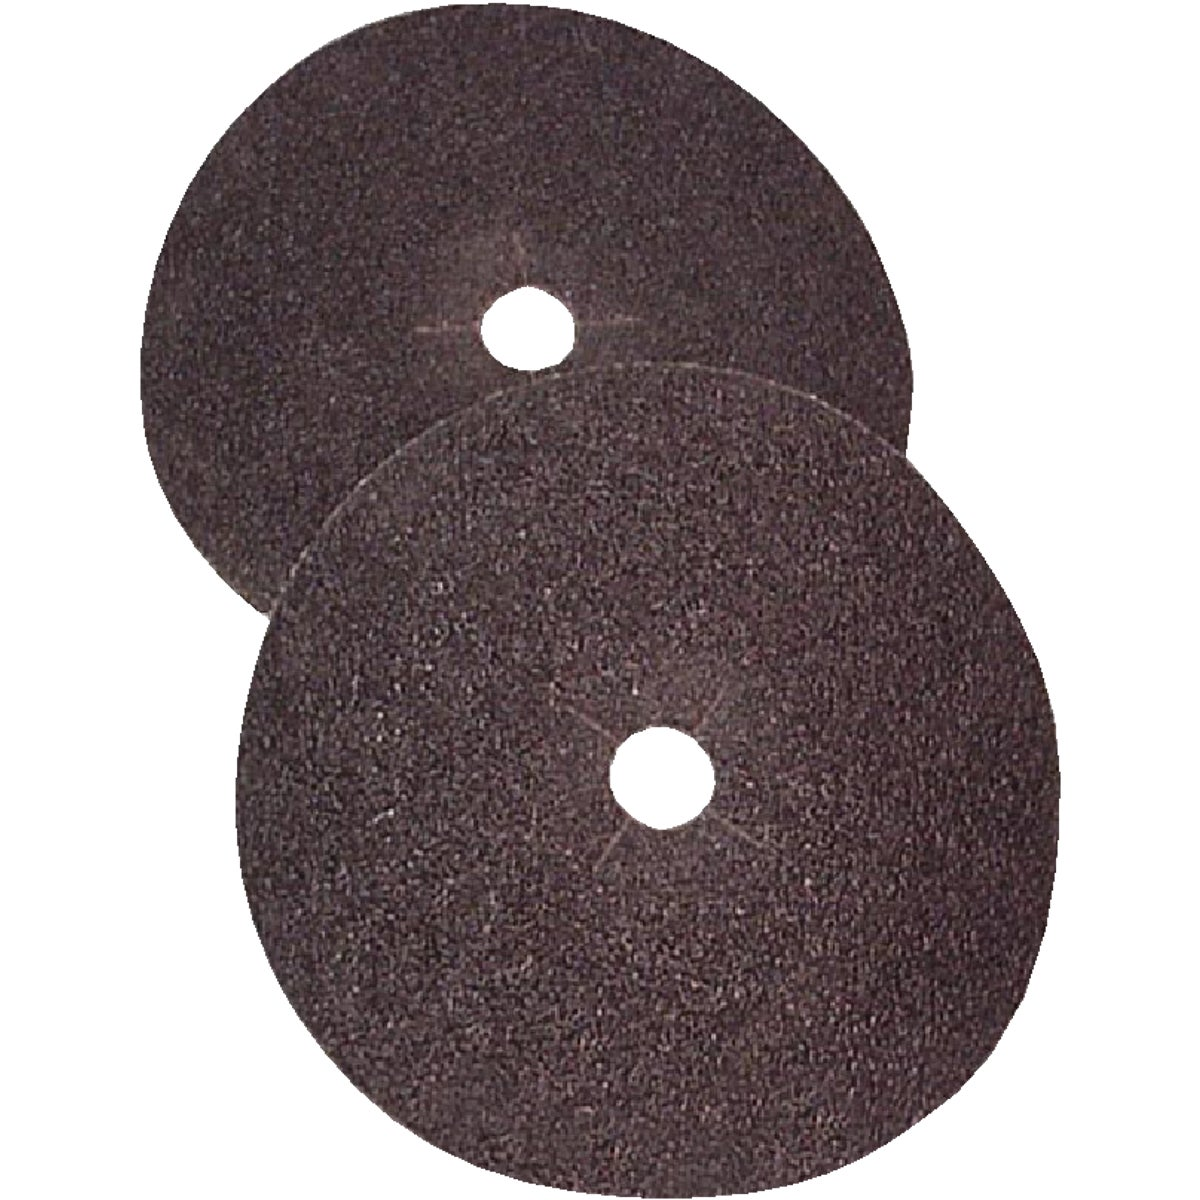 "7"" 100G FLR SANDING DISC - 006-870394 by Virginia Abrasives"